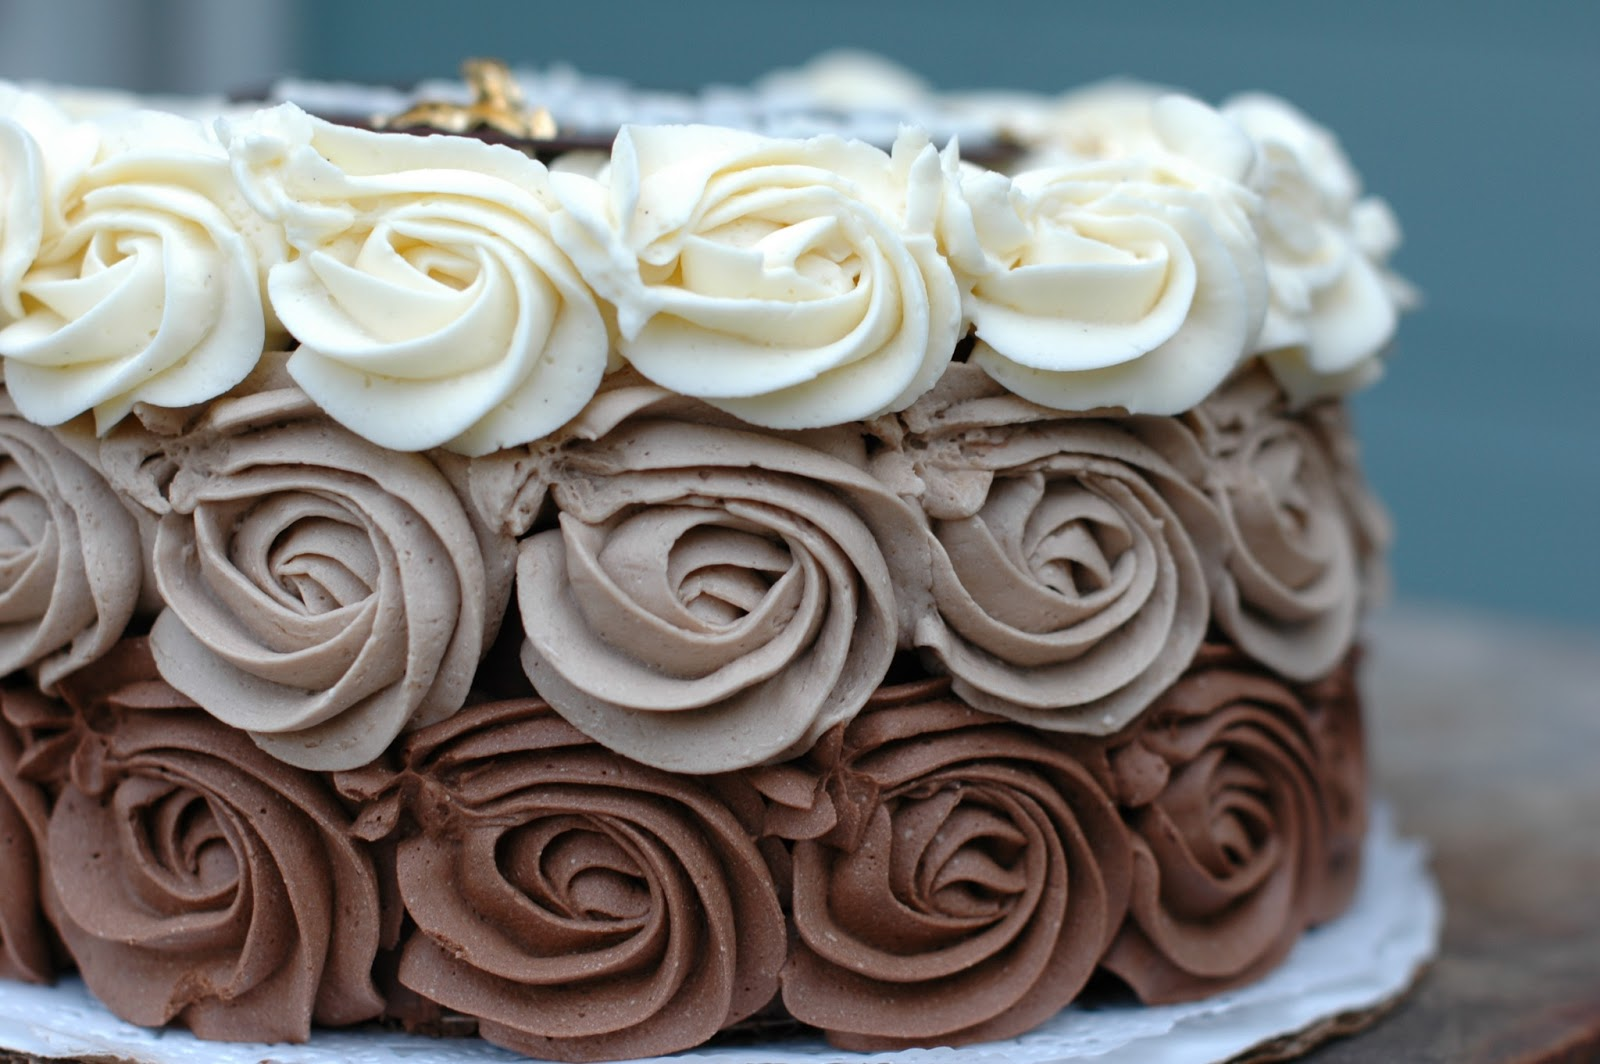 Chocolate Ombre Rose Cake